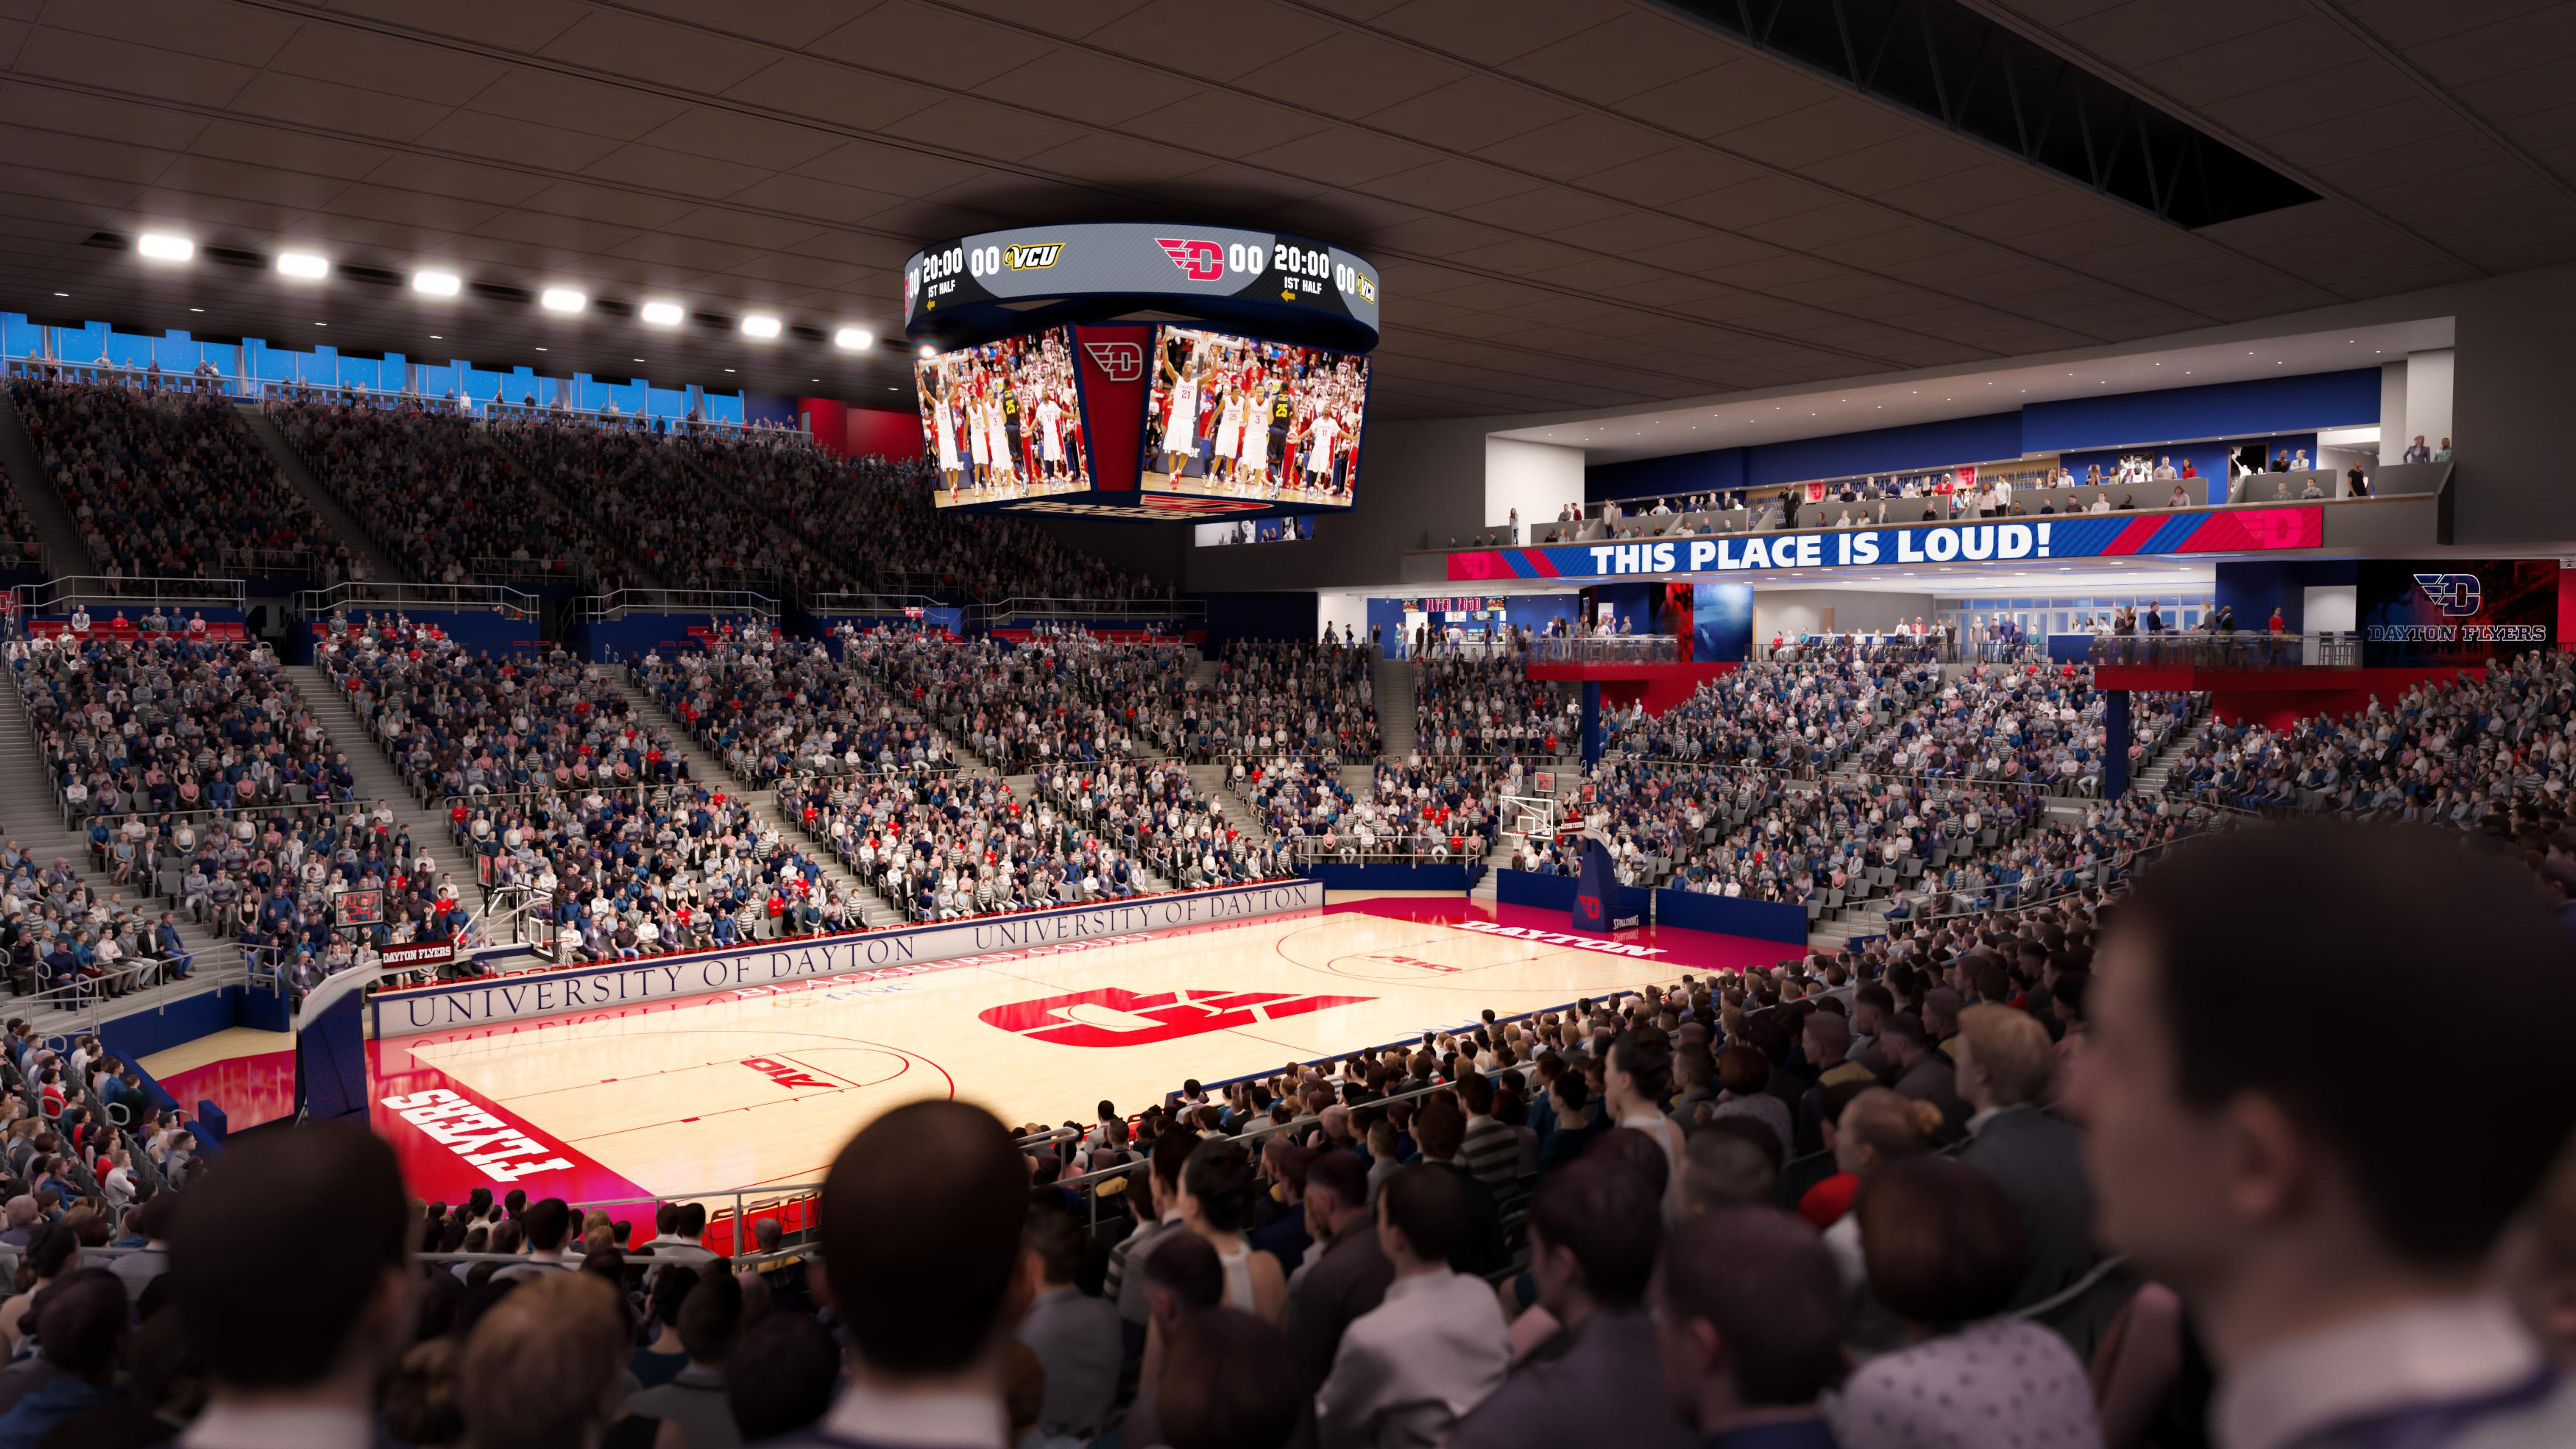 University of Dayton unveils $72 million transformation project to UD Arena (Photos: University of Dayton)